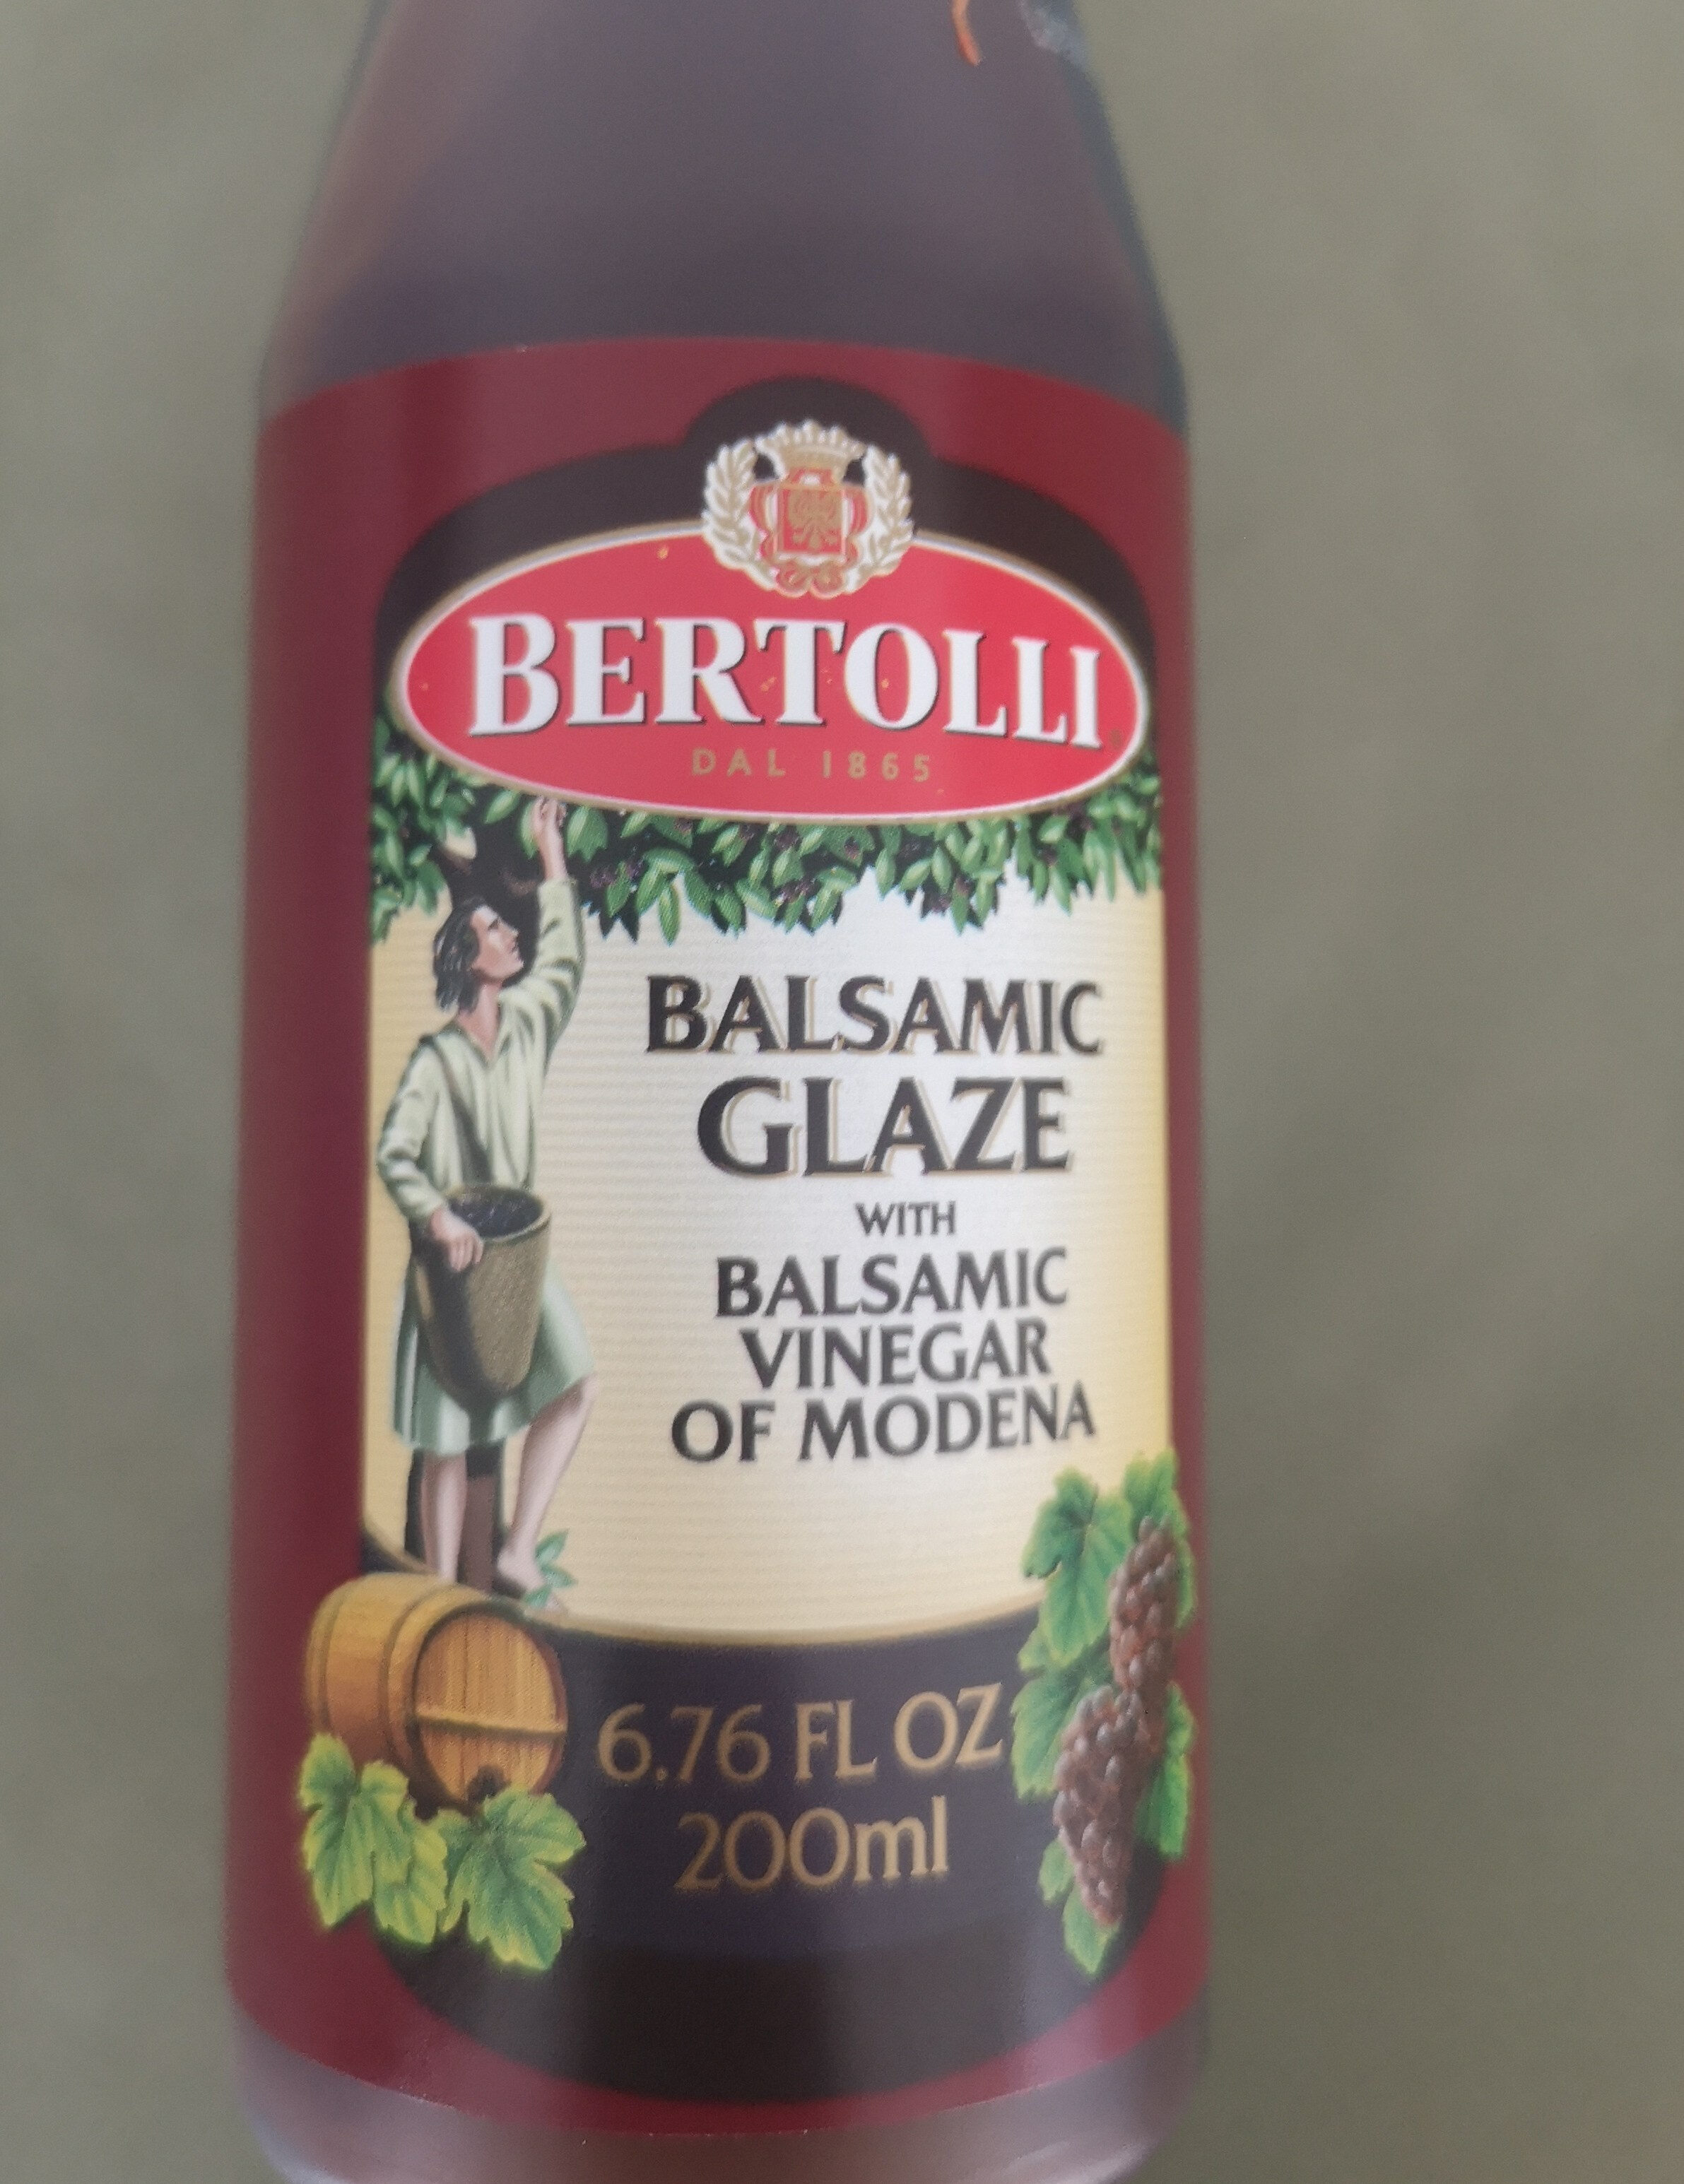 Balsamic Glaze With Balsamic Vinegar Of Modena Bertolli 200ml